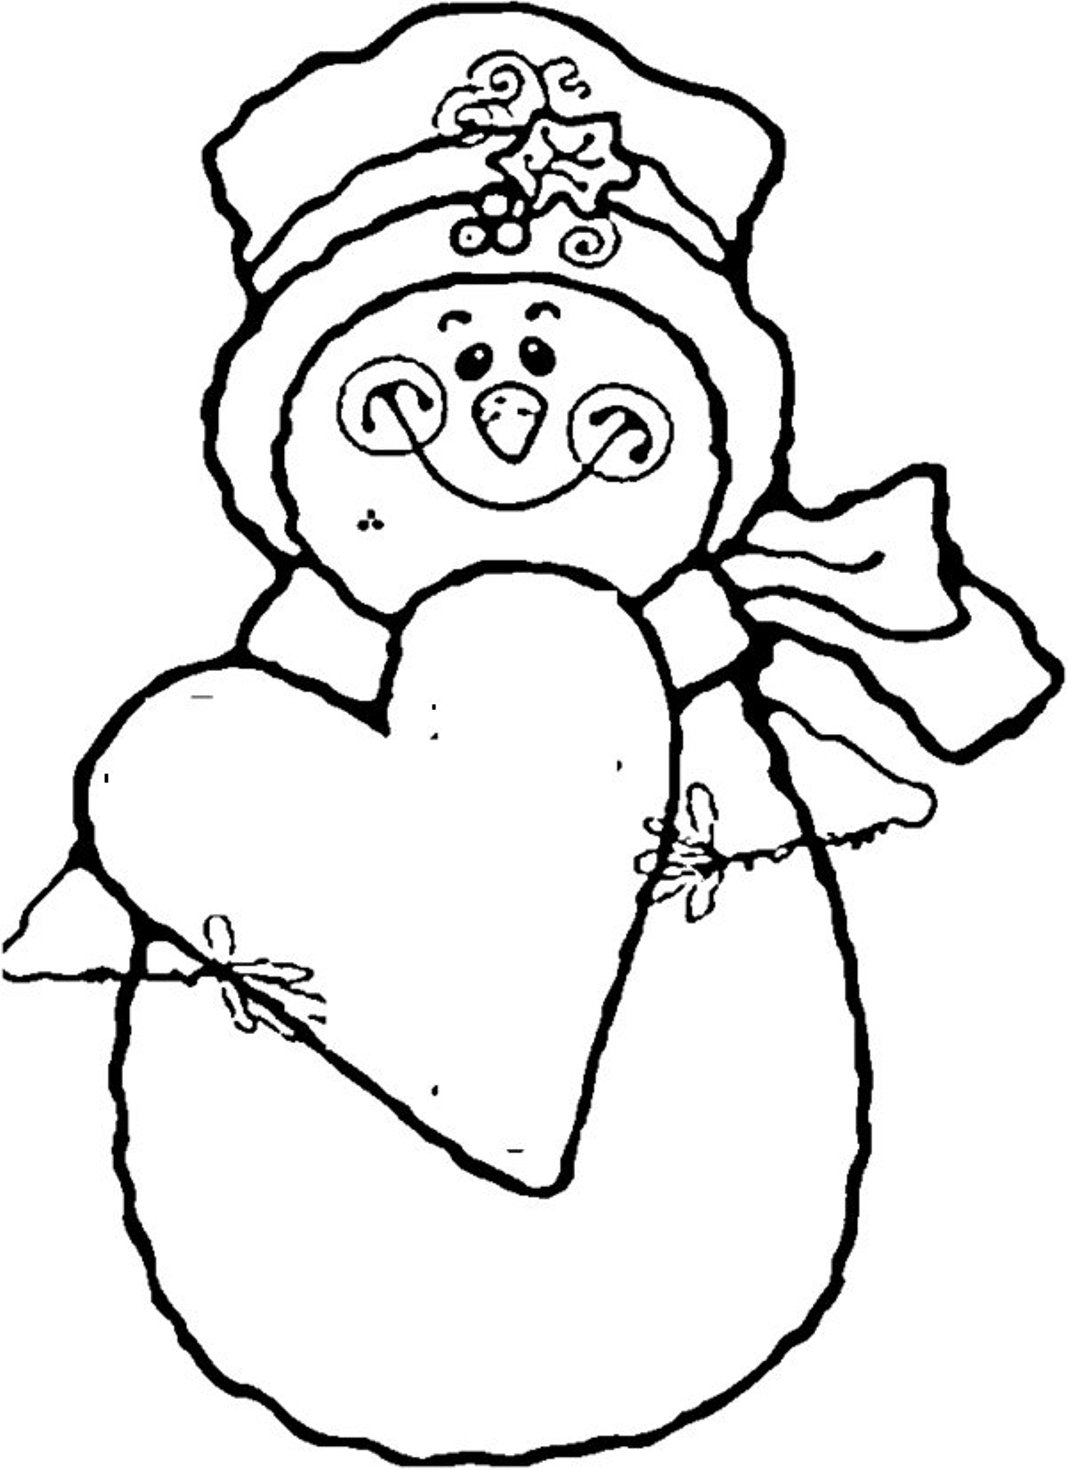 1068x1470 Tremendous Pictures Of Snowmen To Color Approved Coloring Pages